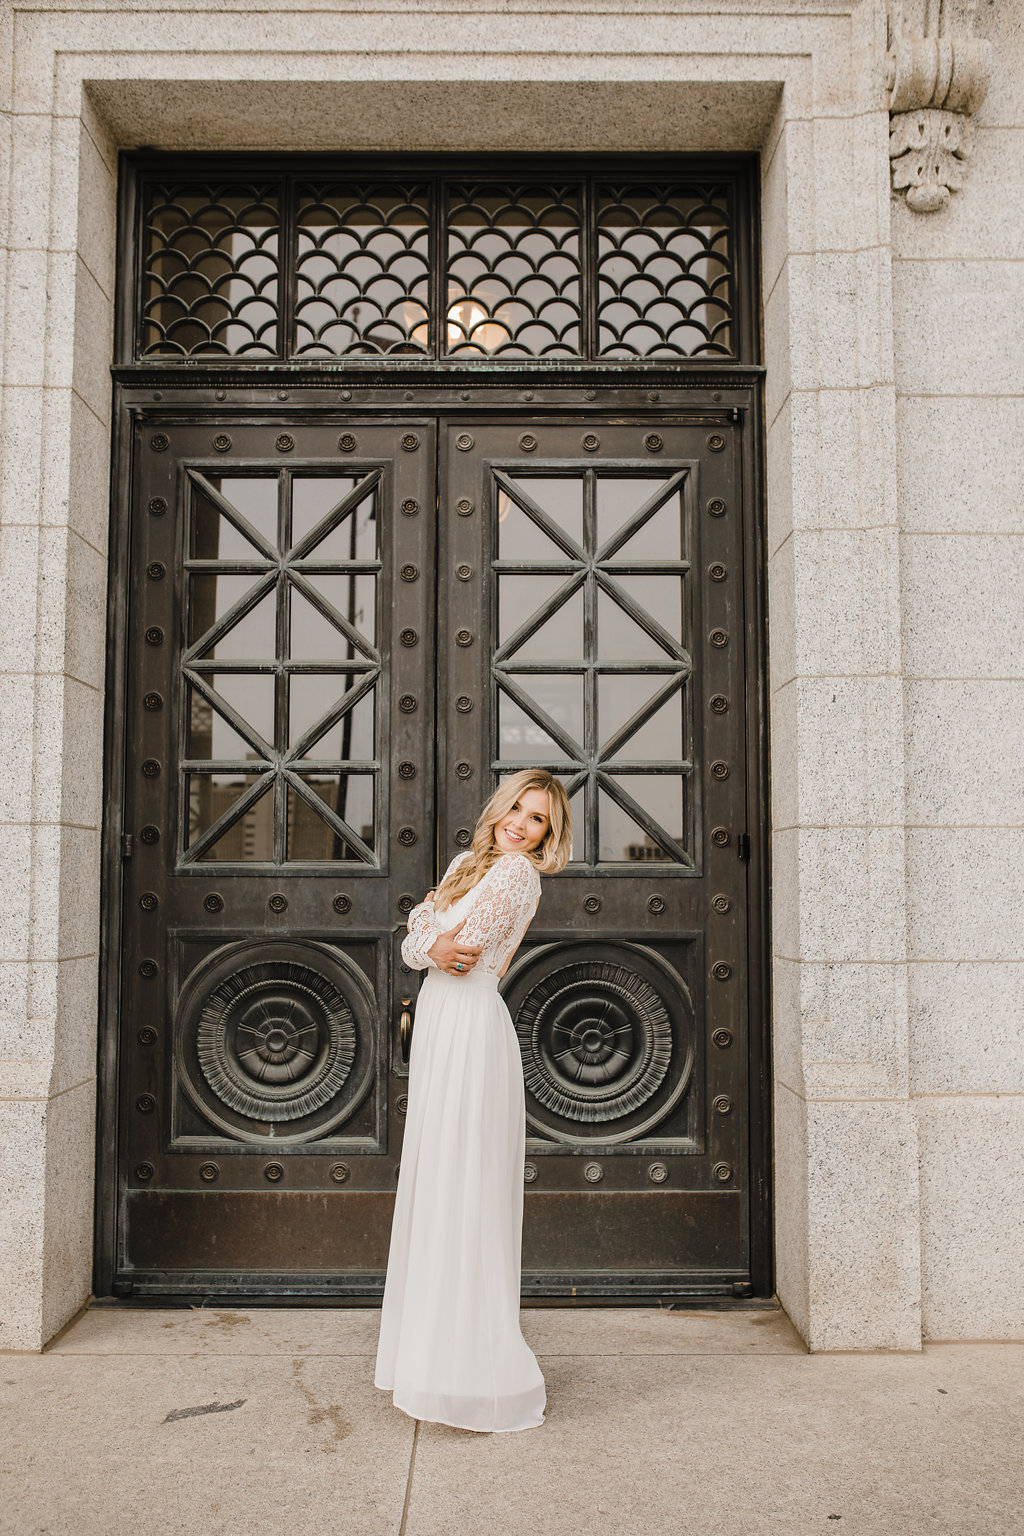 wedding dress stunning bridal photos utah state capitol building wedding photographer